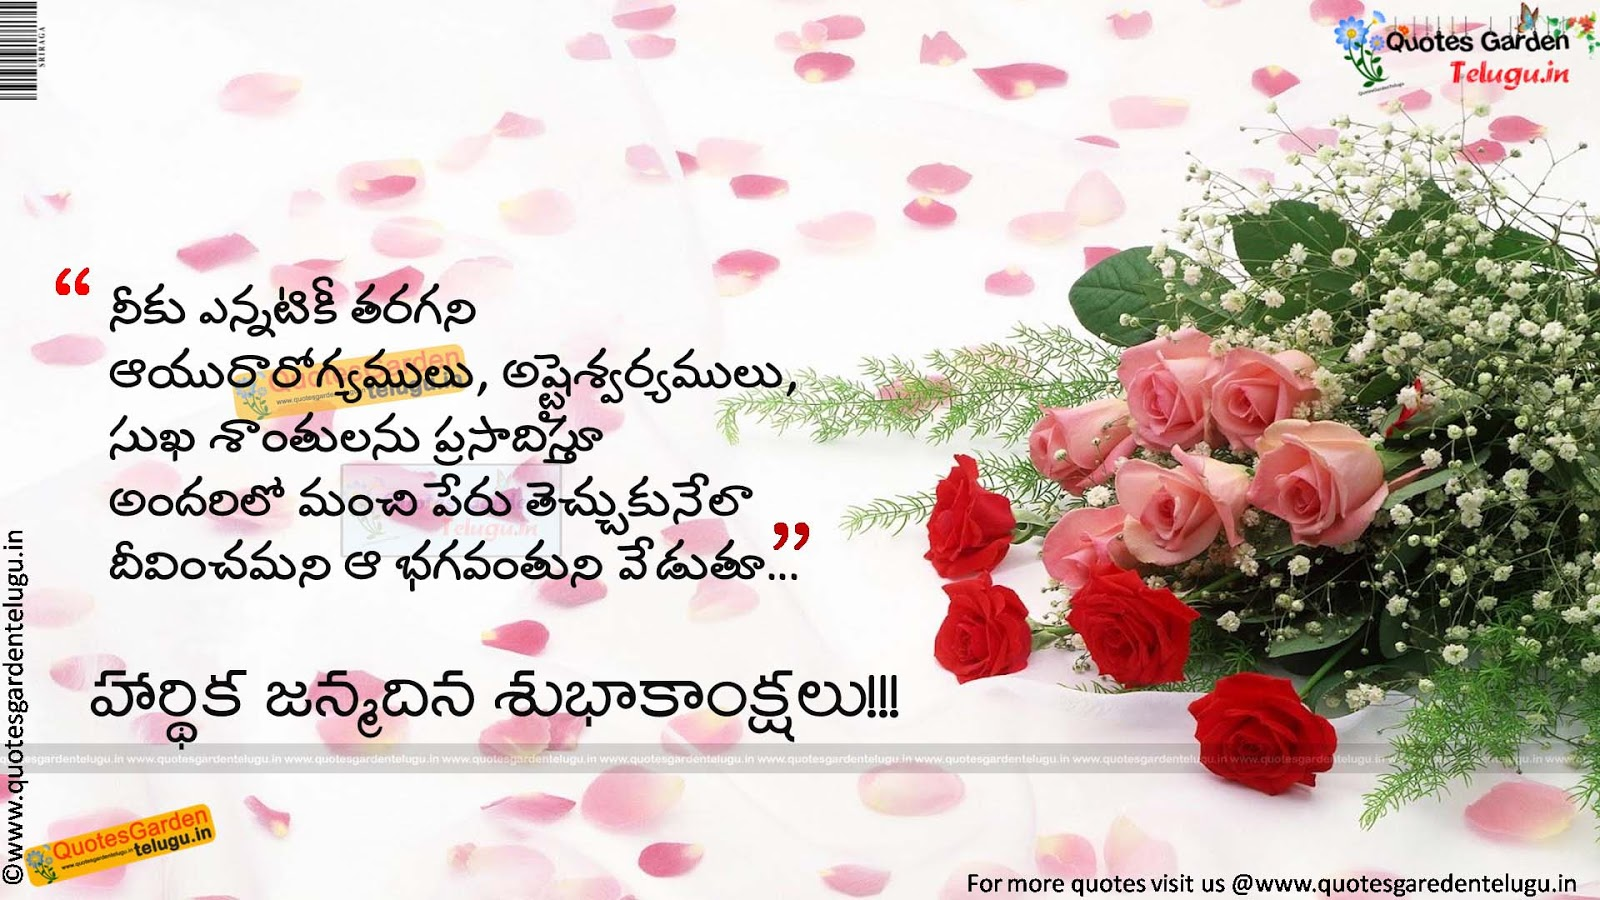 Birthday wishes in telugu greetings image collections greeting birthday wishes quotes for lover in telugu birthday wishes greetings wallpapers quotes in telugu 1161 quotes kristyandbryce Image collections